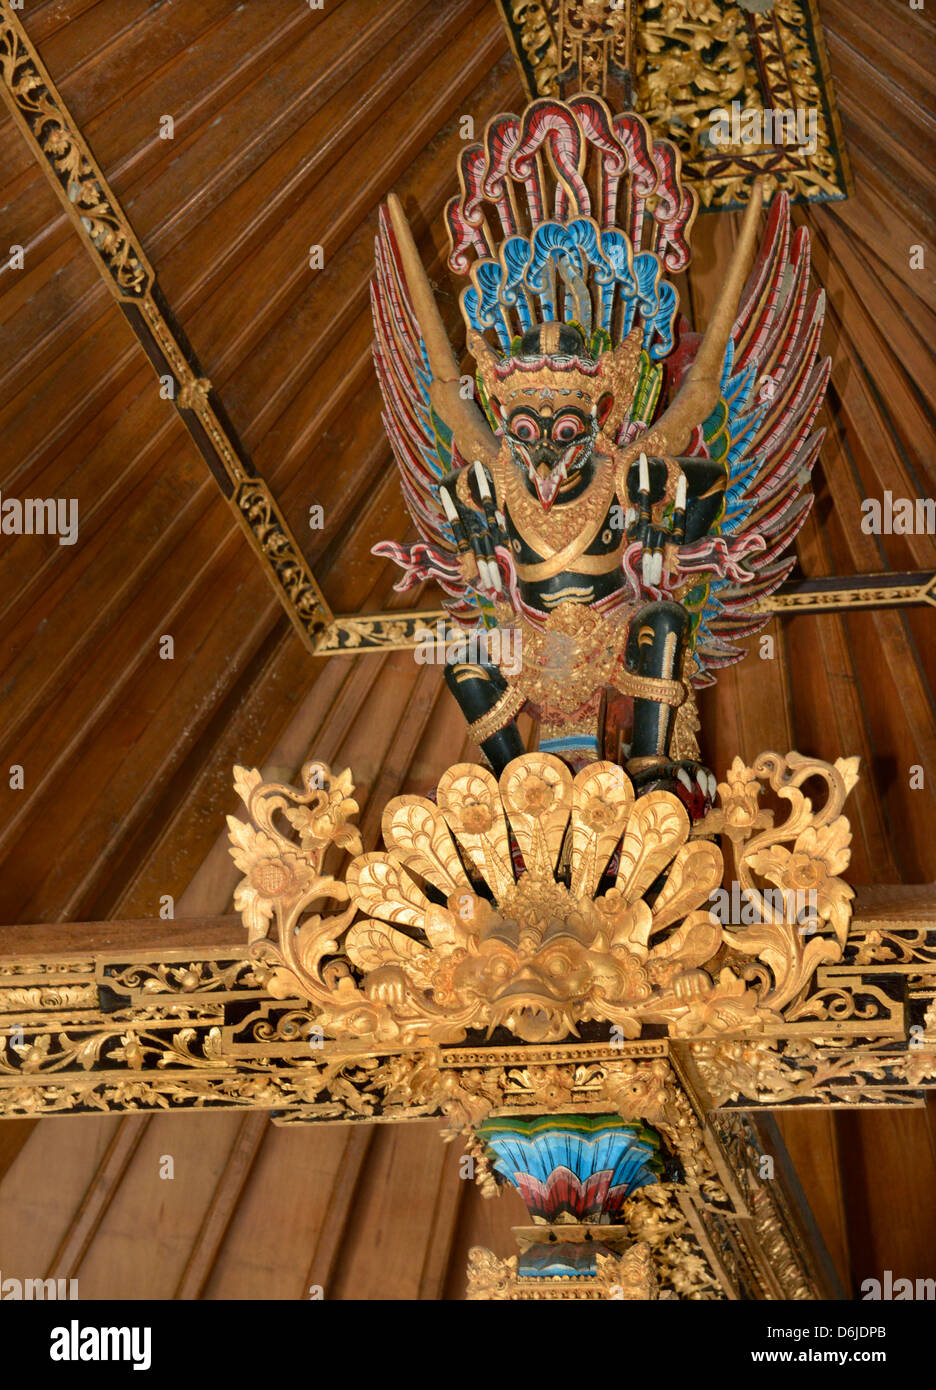 Garuda image above the bed beams of a wealthy Balinese household, Bali, Indonesia, Southeast Asia, Asia - Stock Image